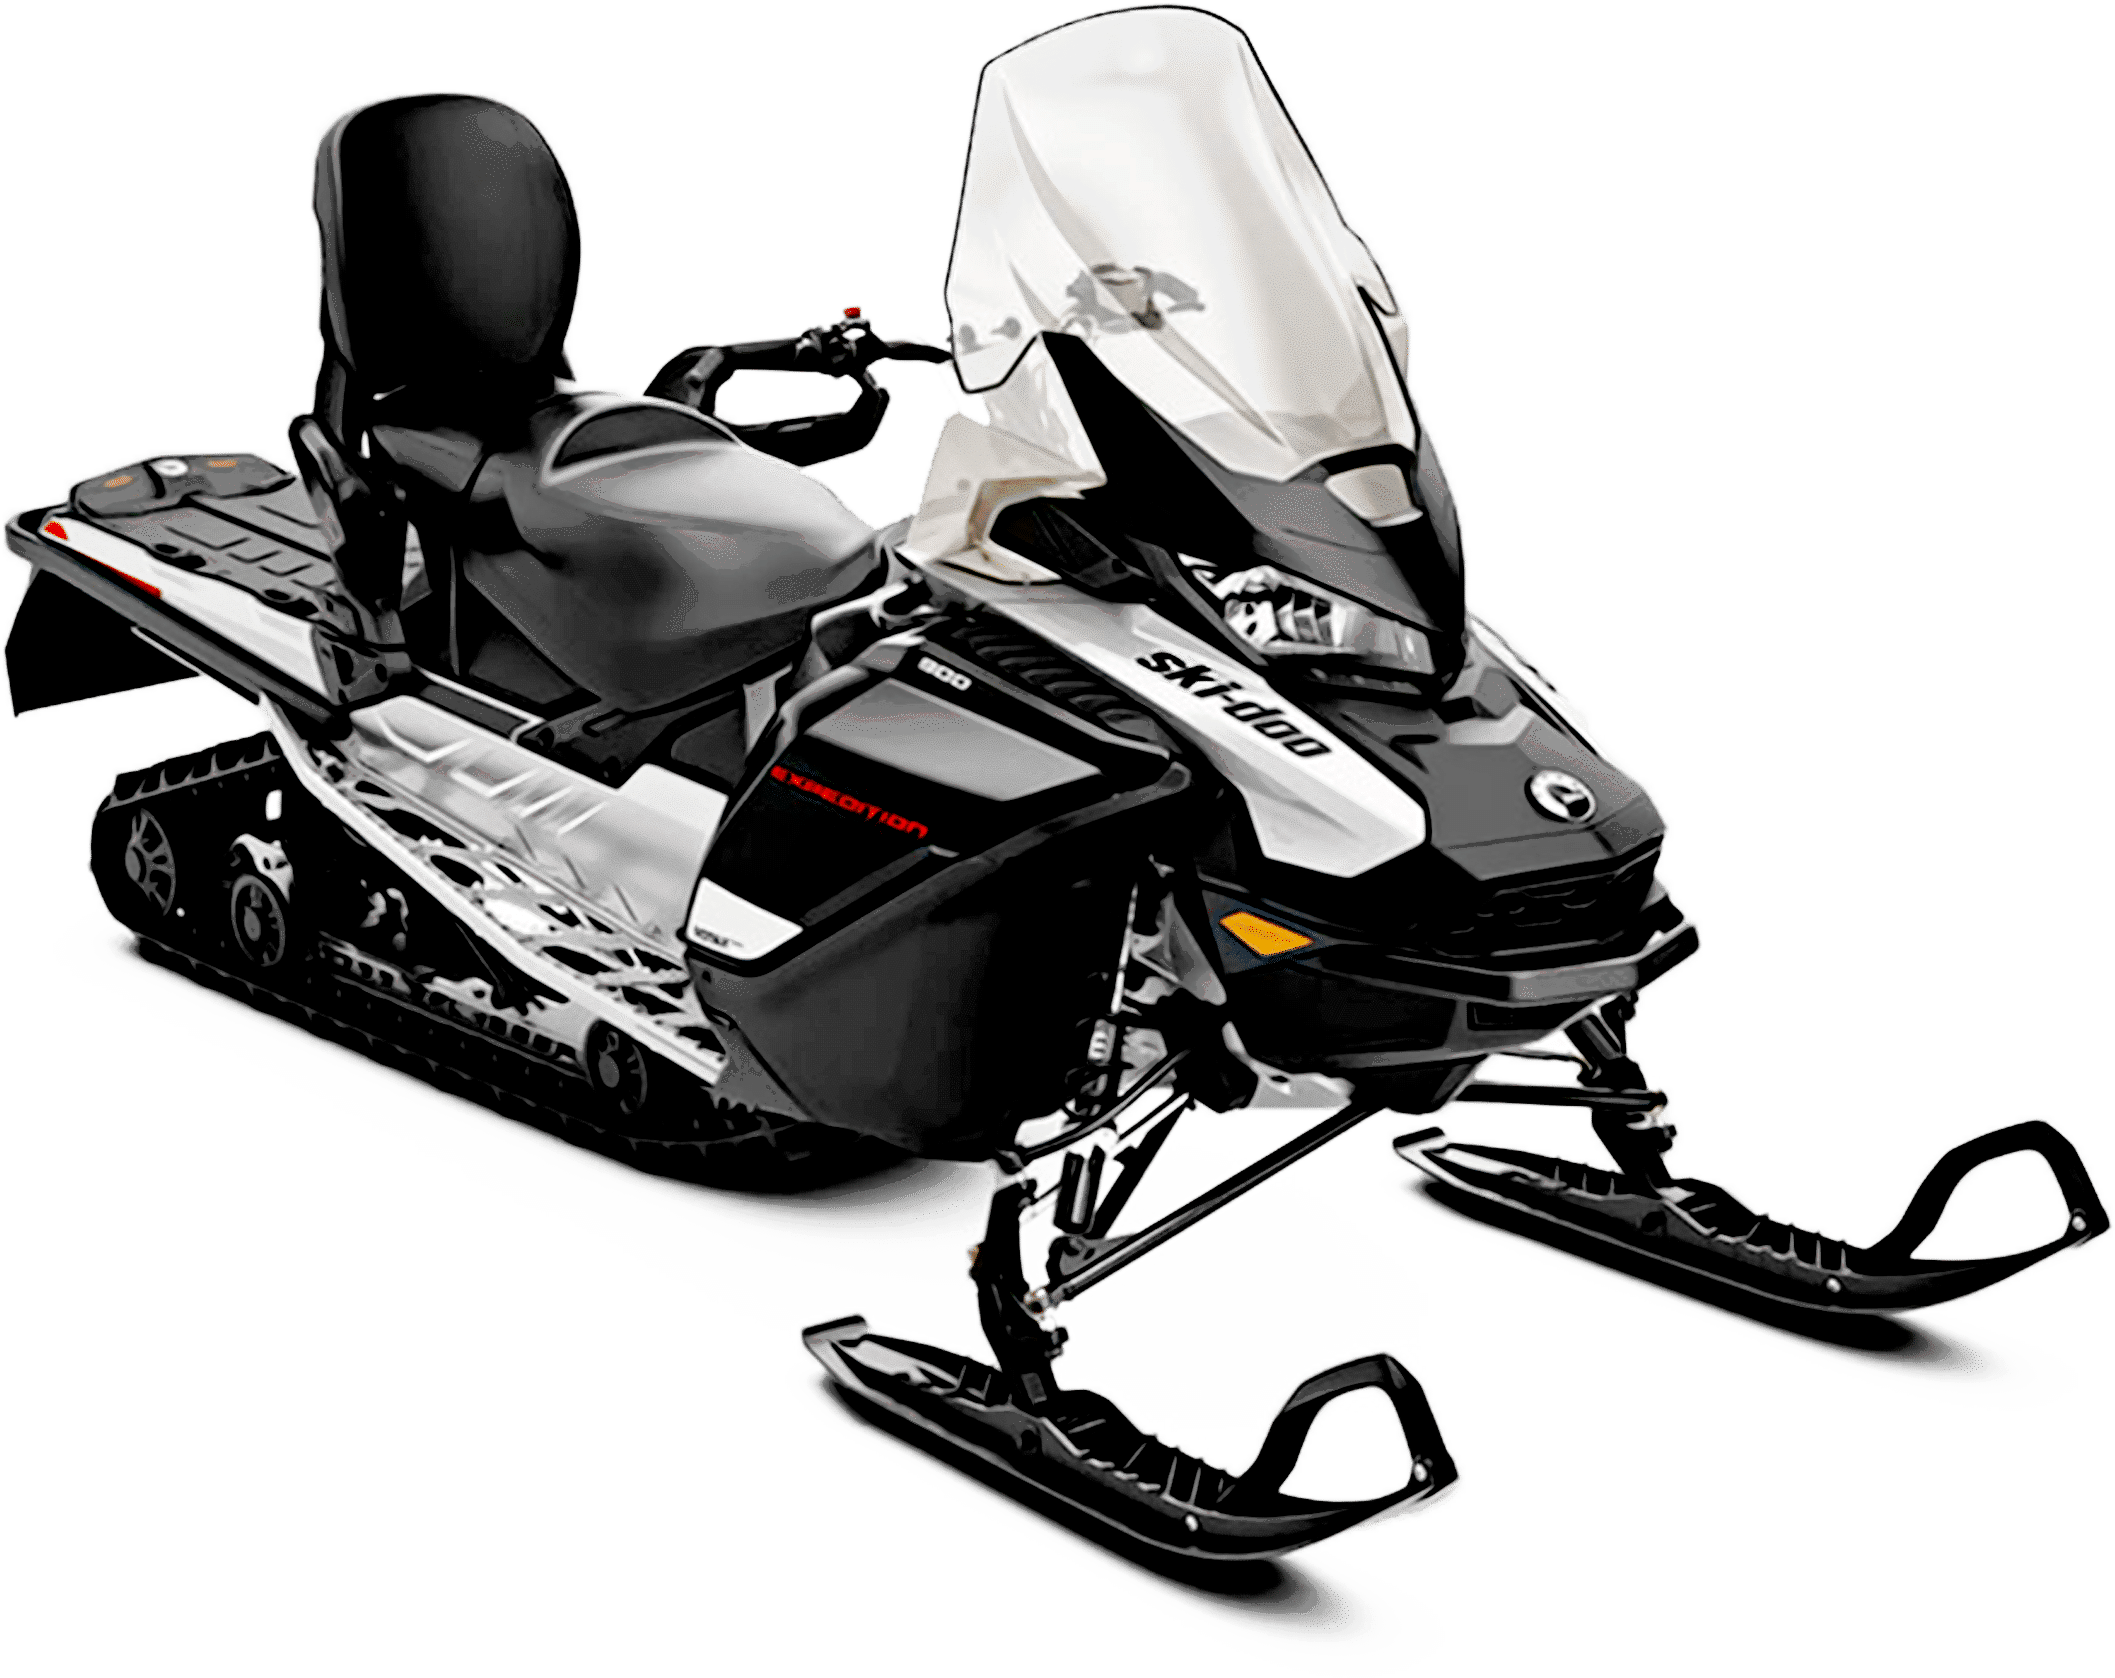 Ski-Doo Expedition3